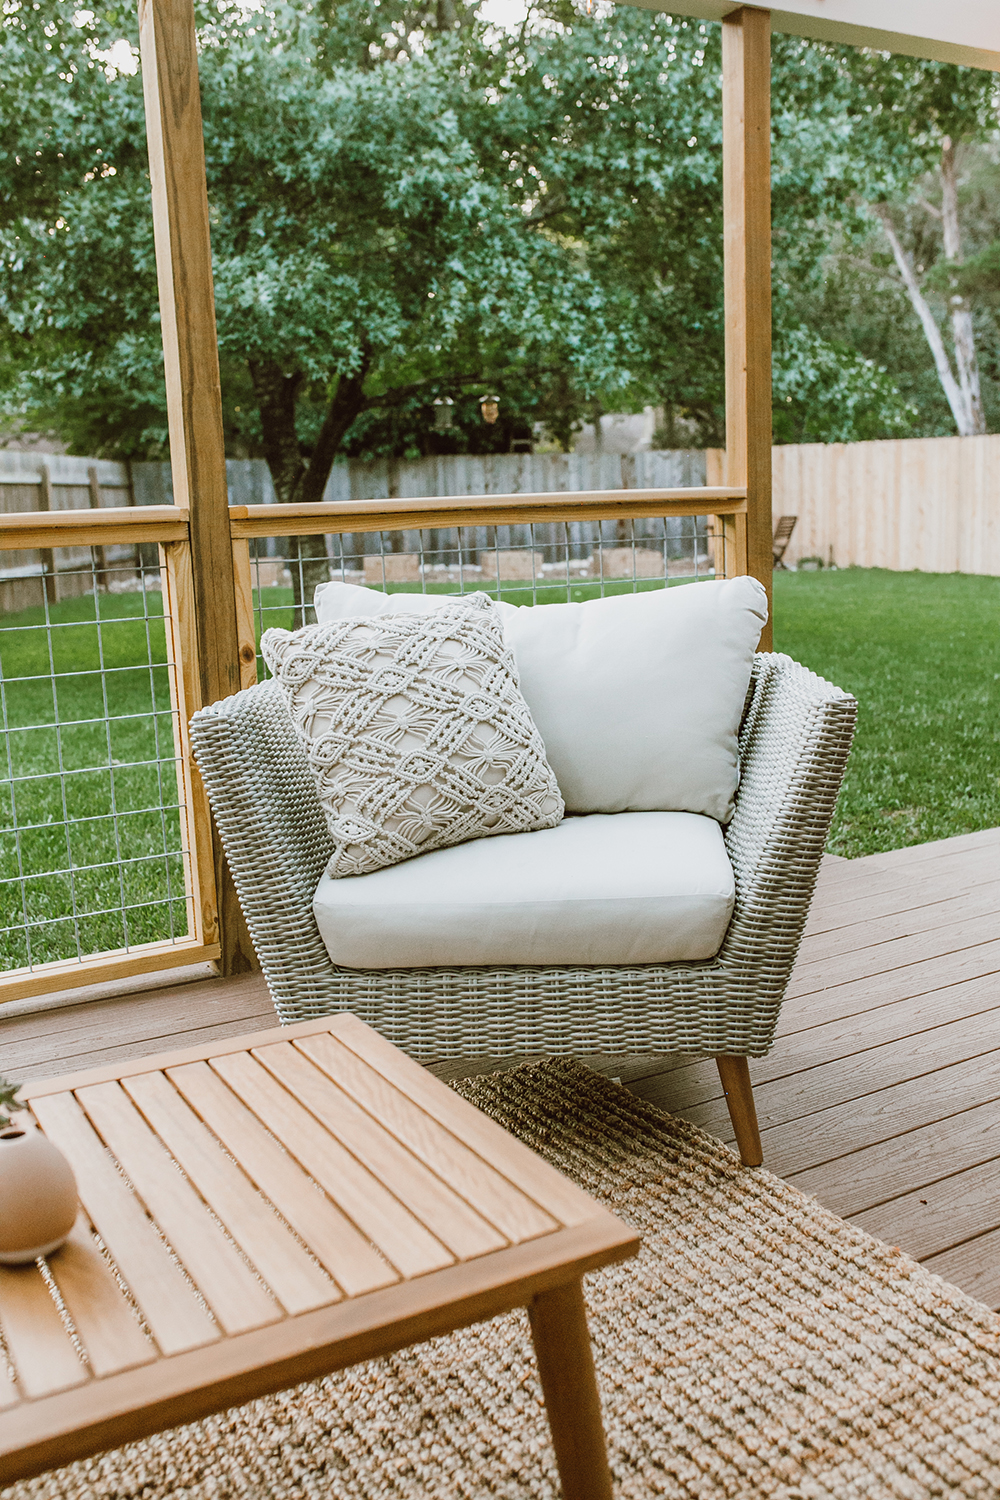 Tremendous Before After Our Patio Reveal Livvyland Austin Interior Design Ideas Gentotryabchikinfo